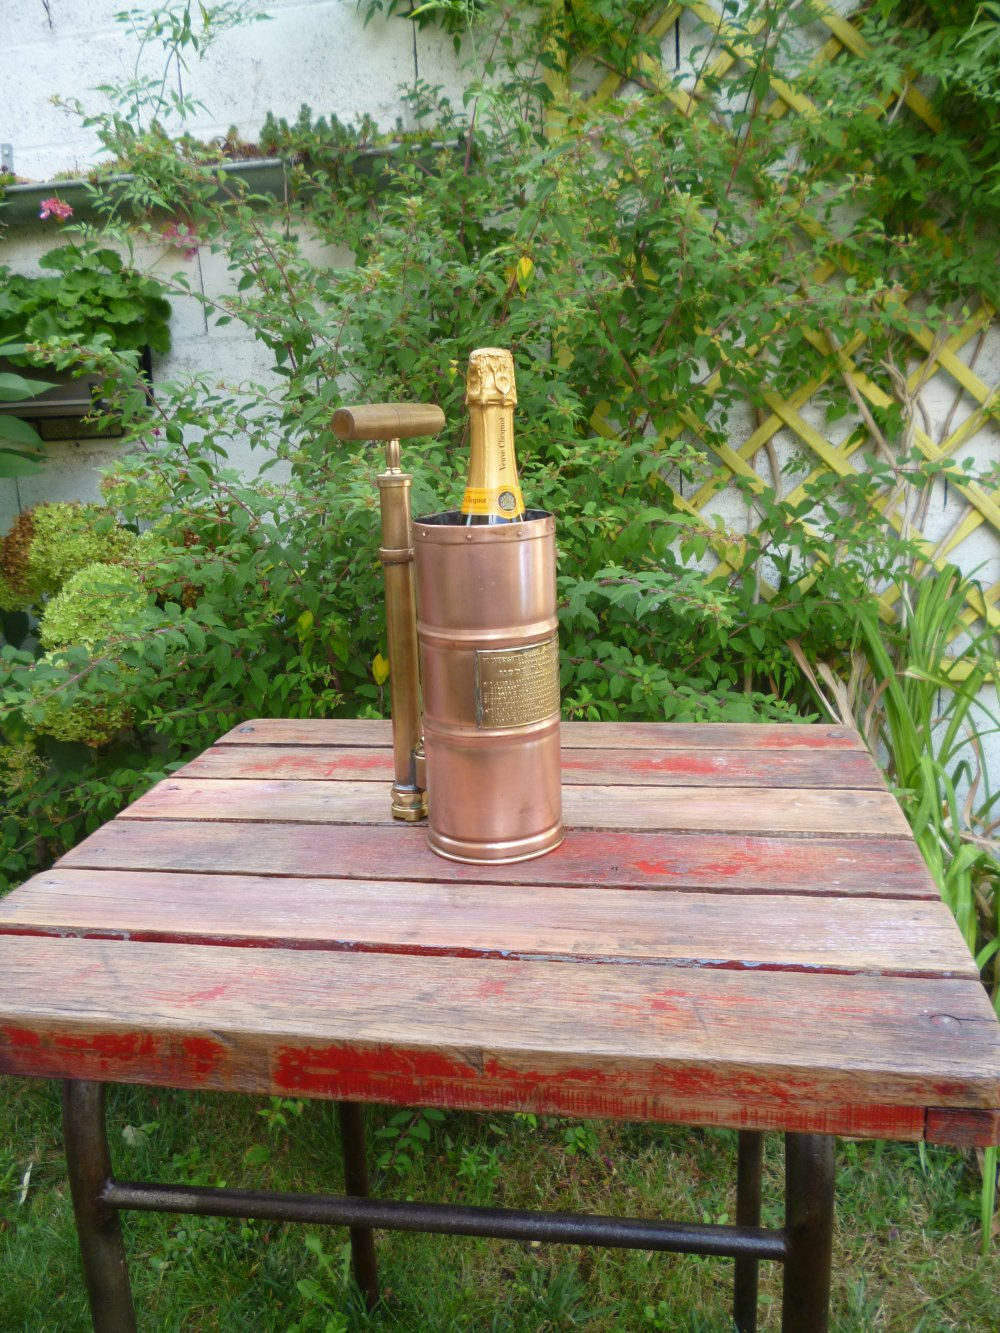 Seau a champagne - Pulverisateur - Upcycling